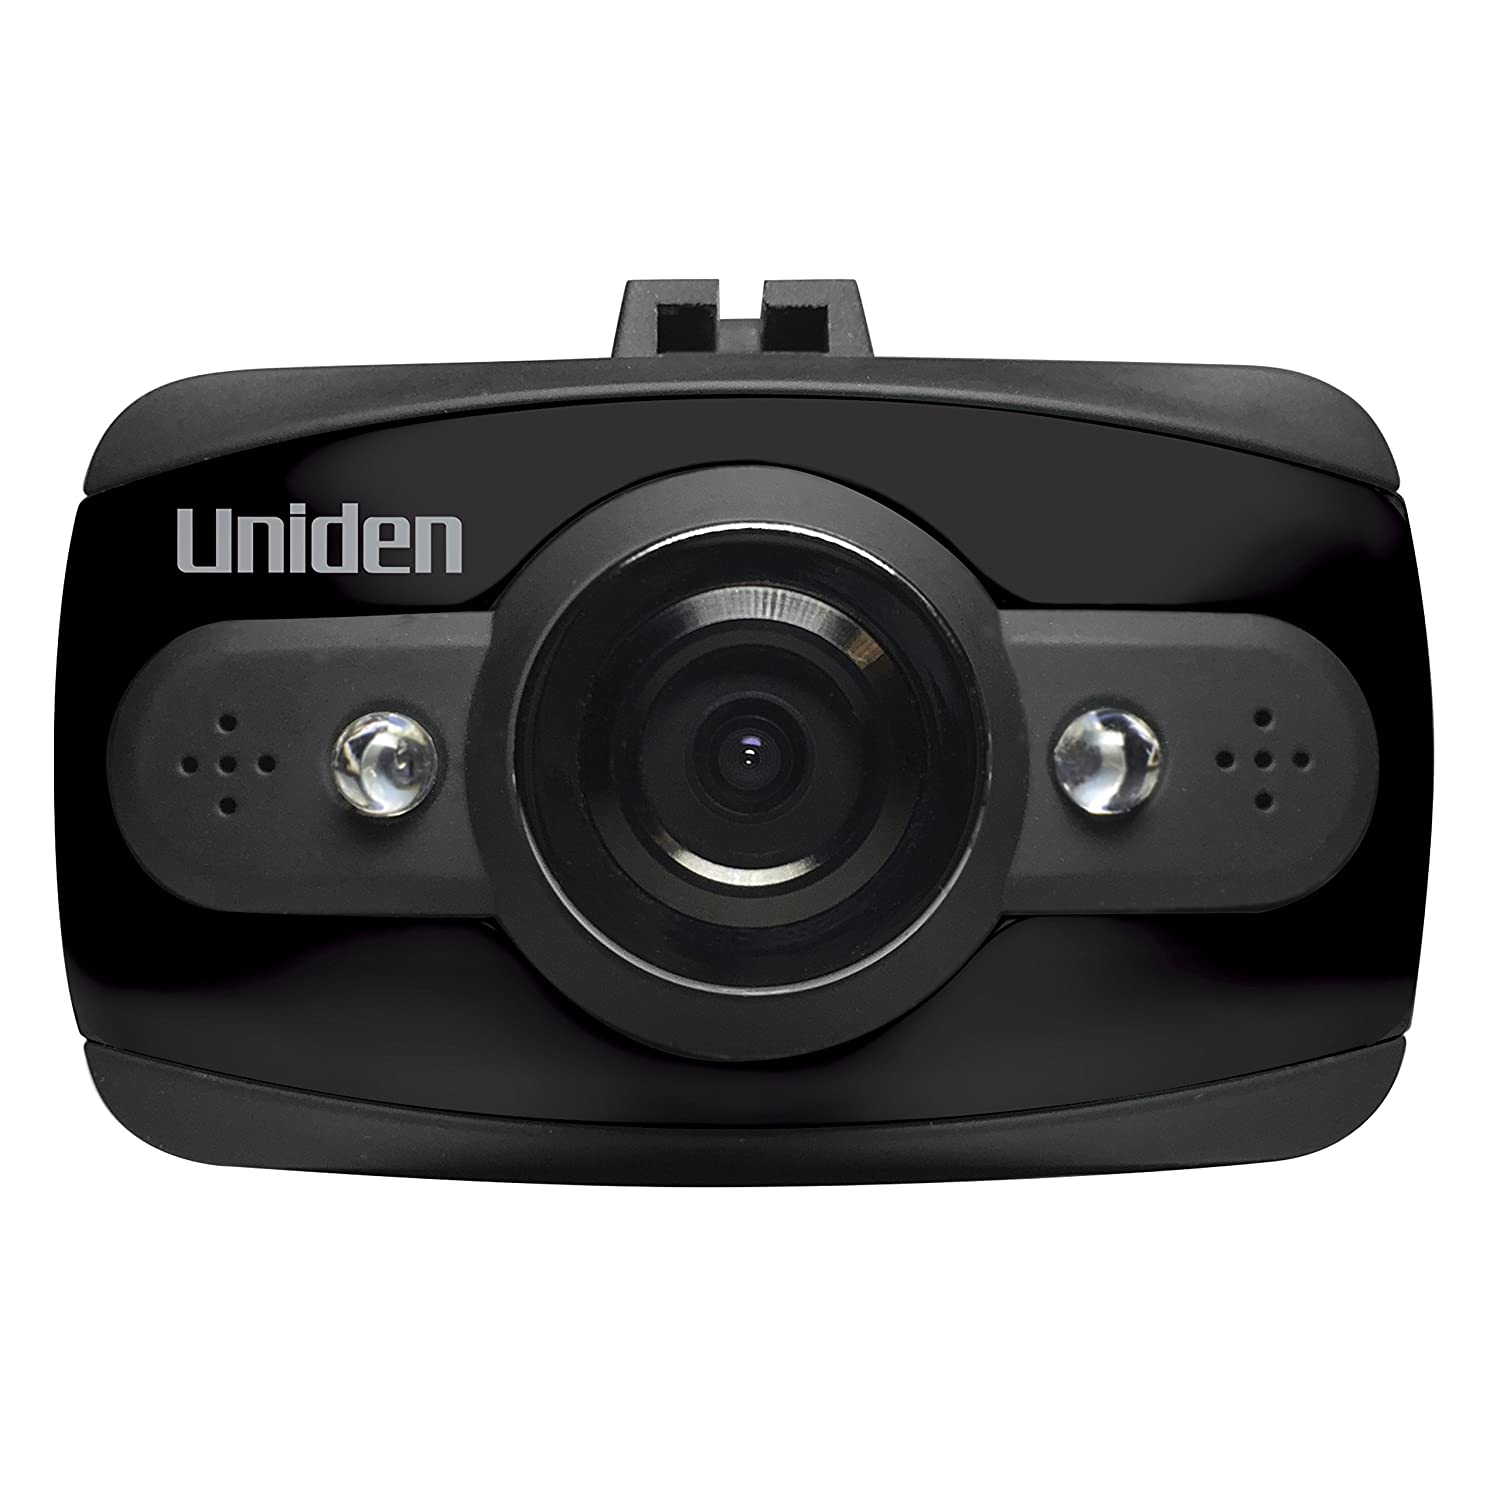 Uniden DCAM Dash Cam, 1080P HD Night Vision Dash Camera, Automotive Video Recorder, 120 Degree View Angle, Collision Detection Mode